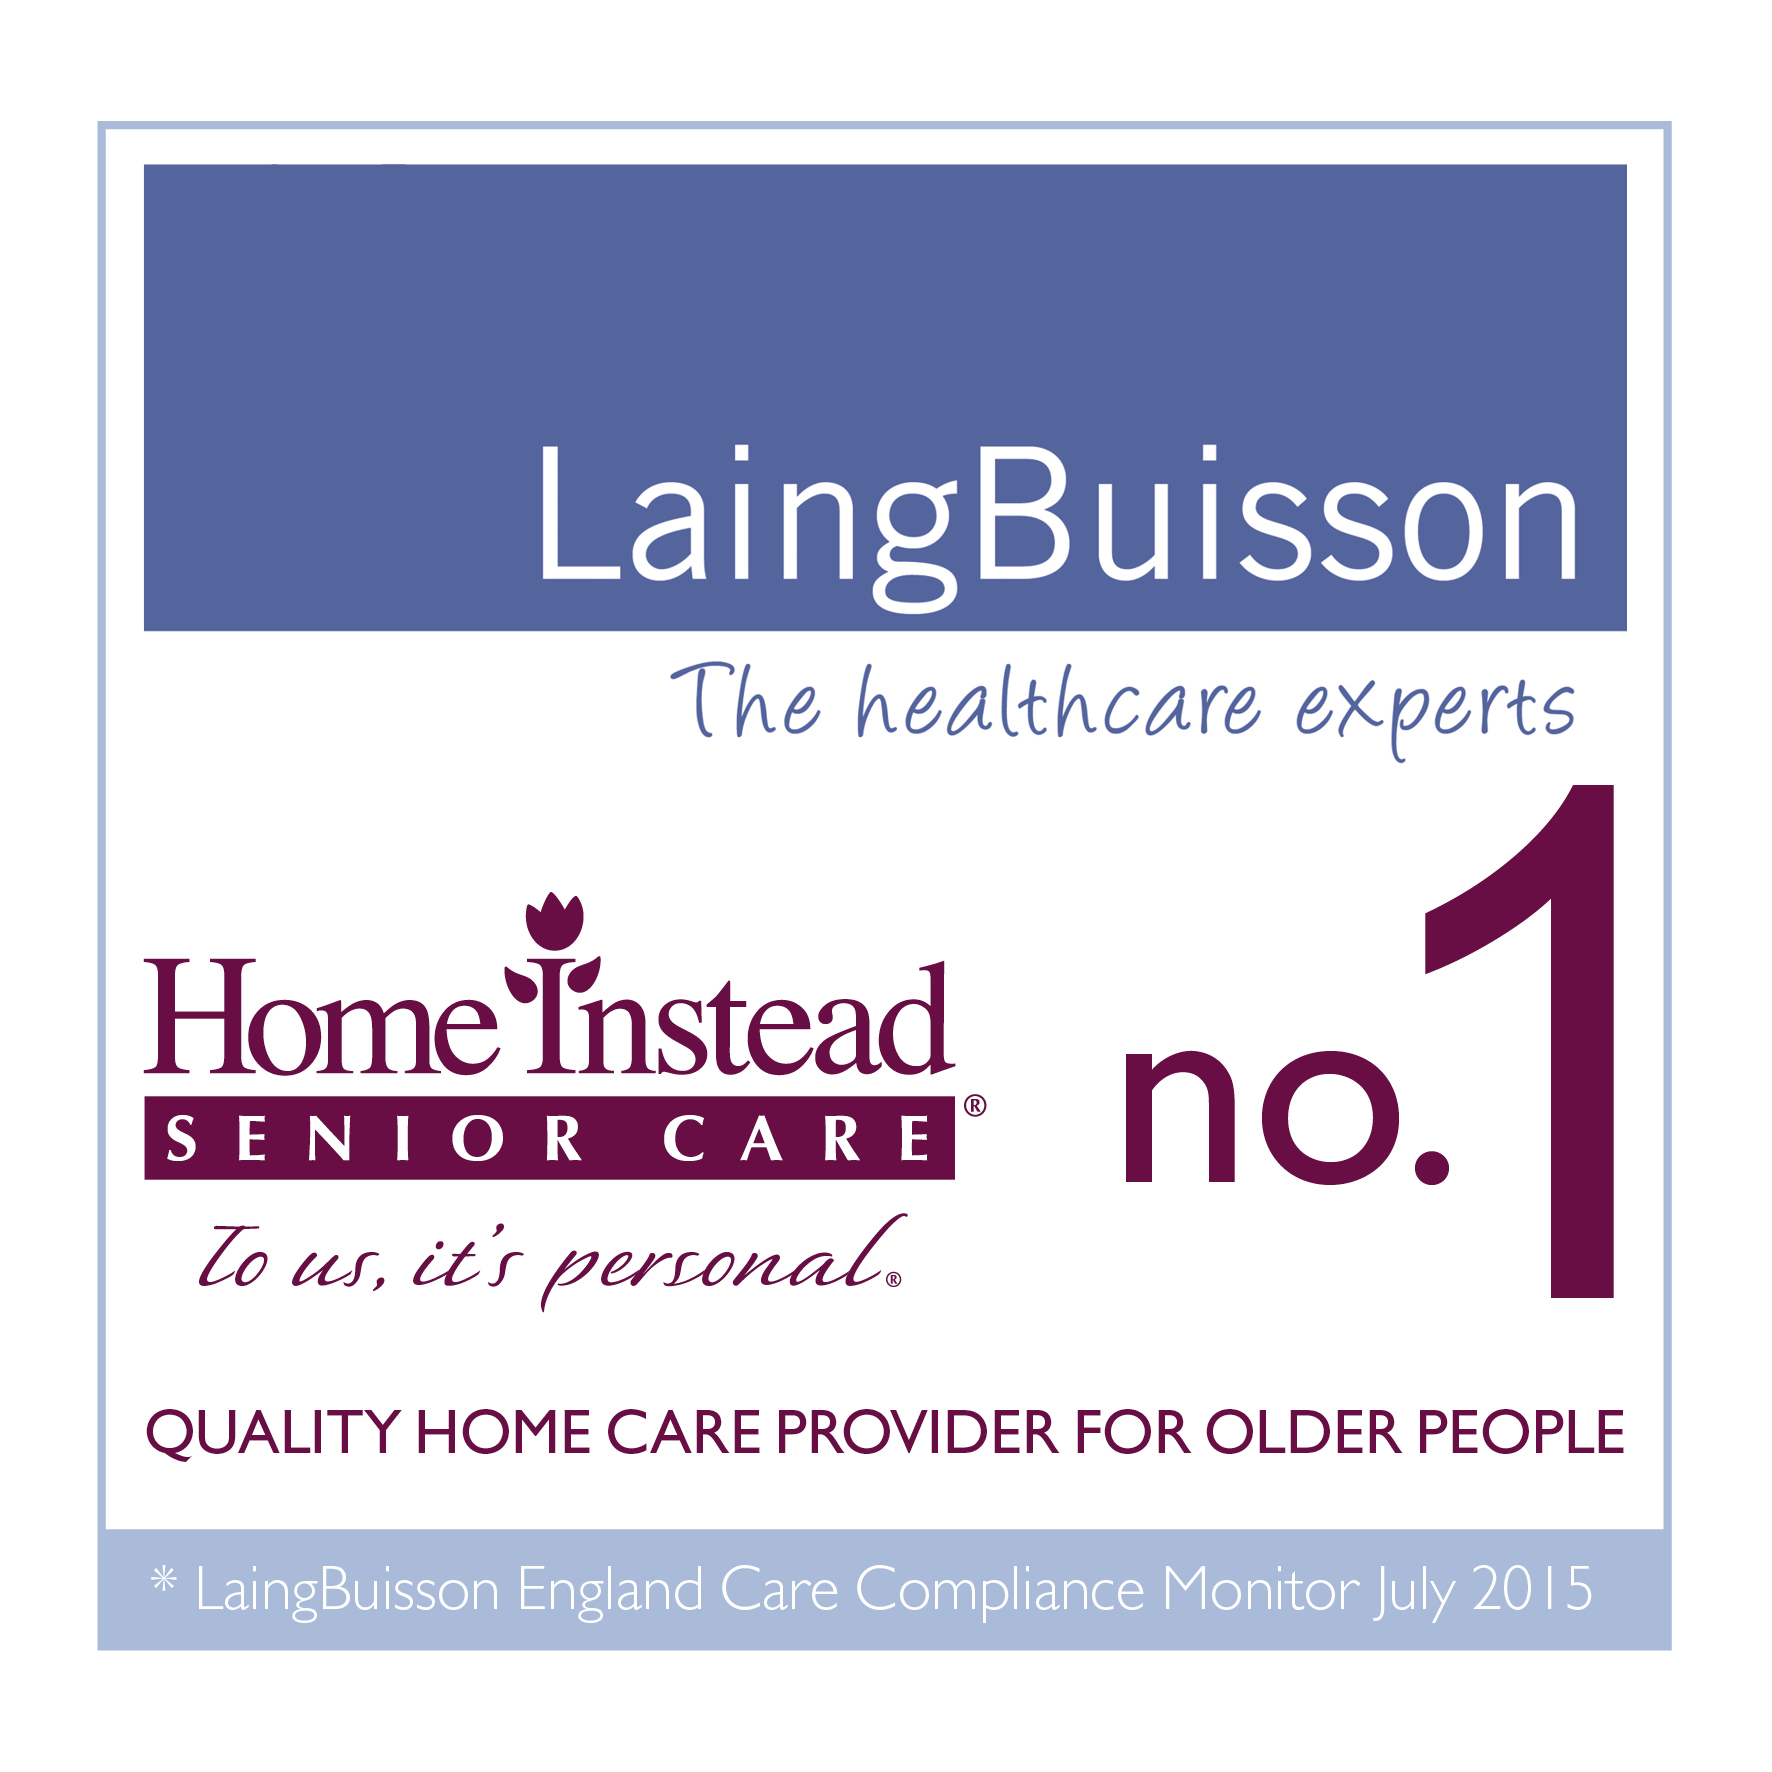 LaingBuisson no.1 Quality Home Care Provider for Older People logo